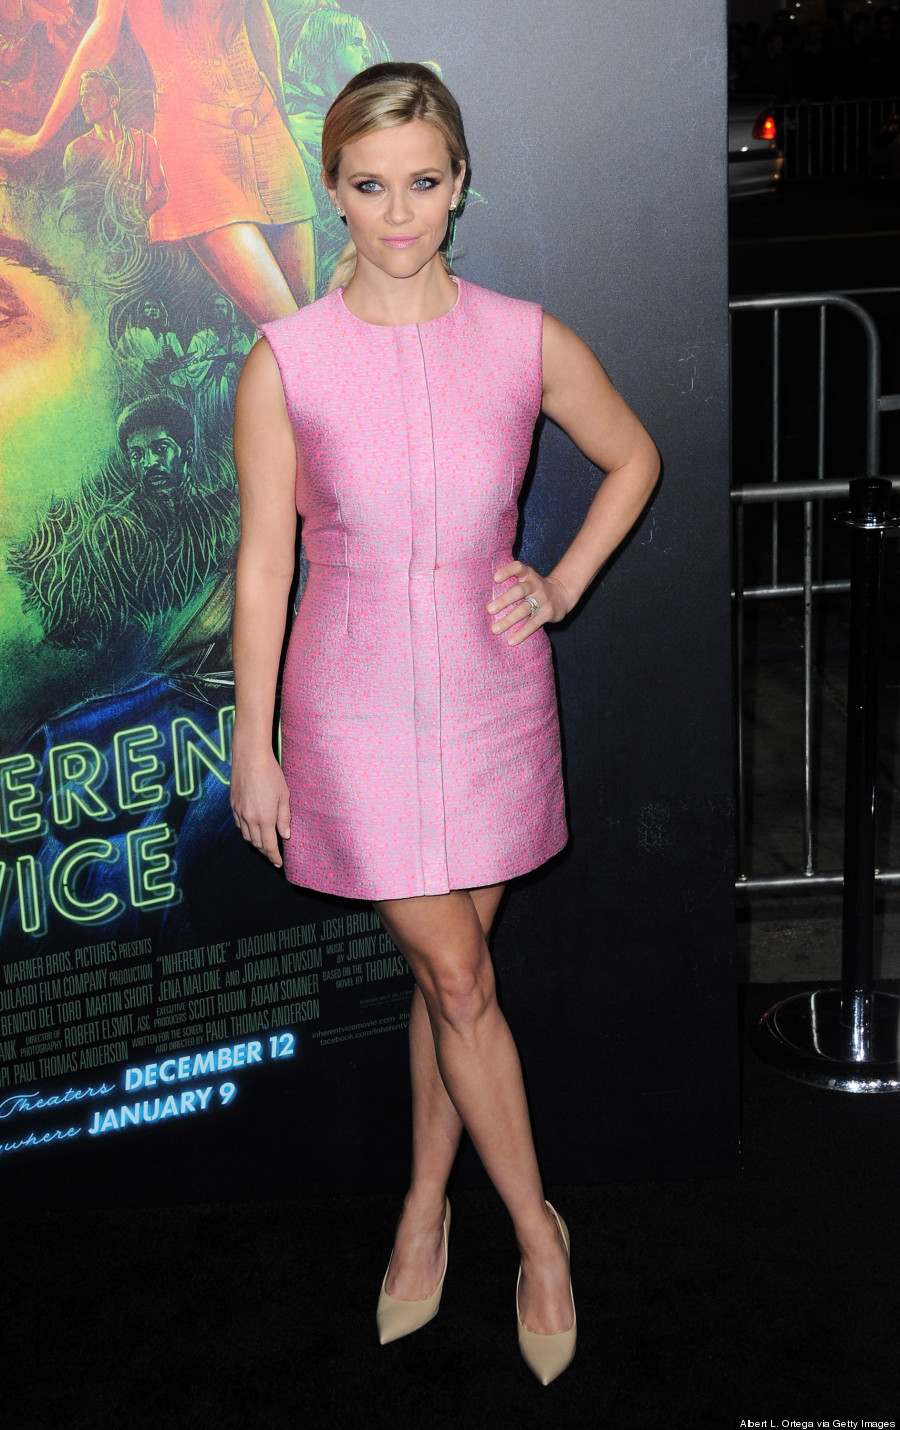 Reese Witherspoon Brightens Up The Holidays In Cute Pink